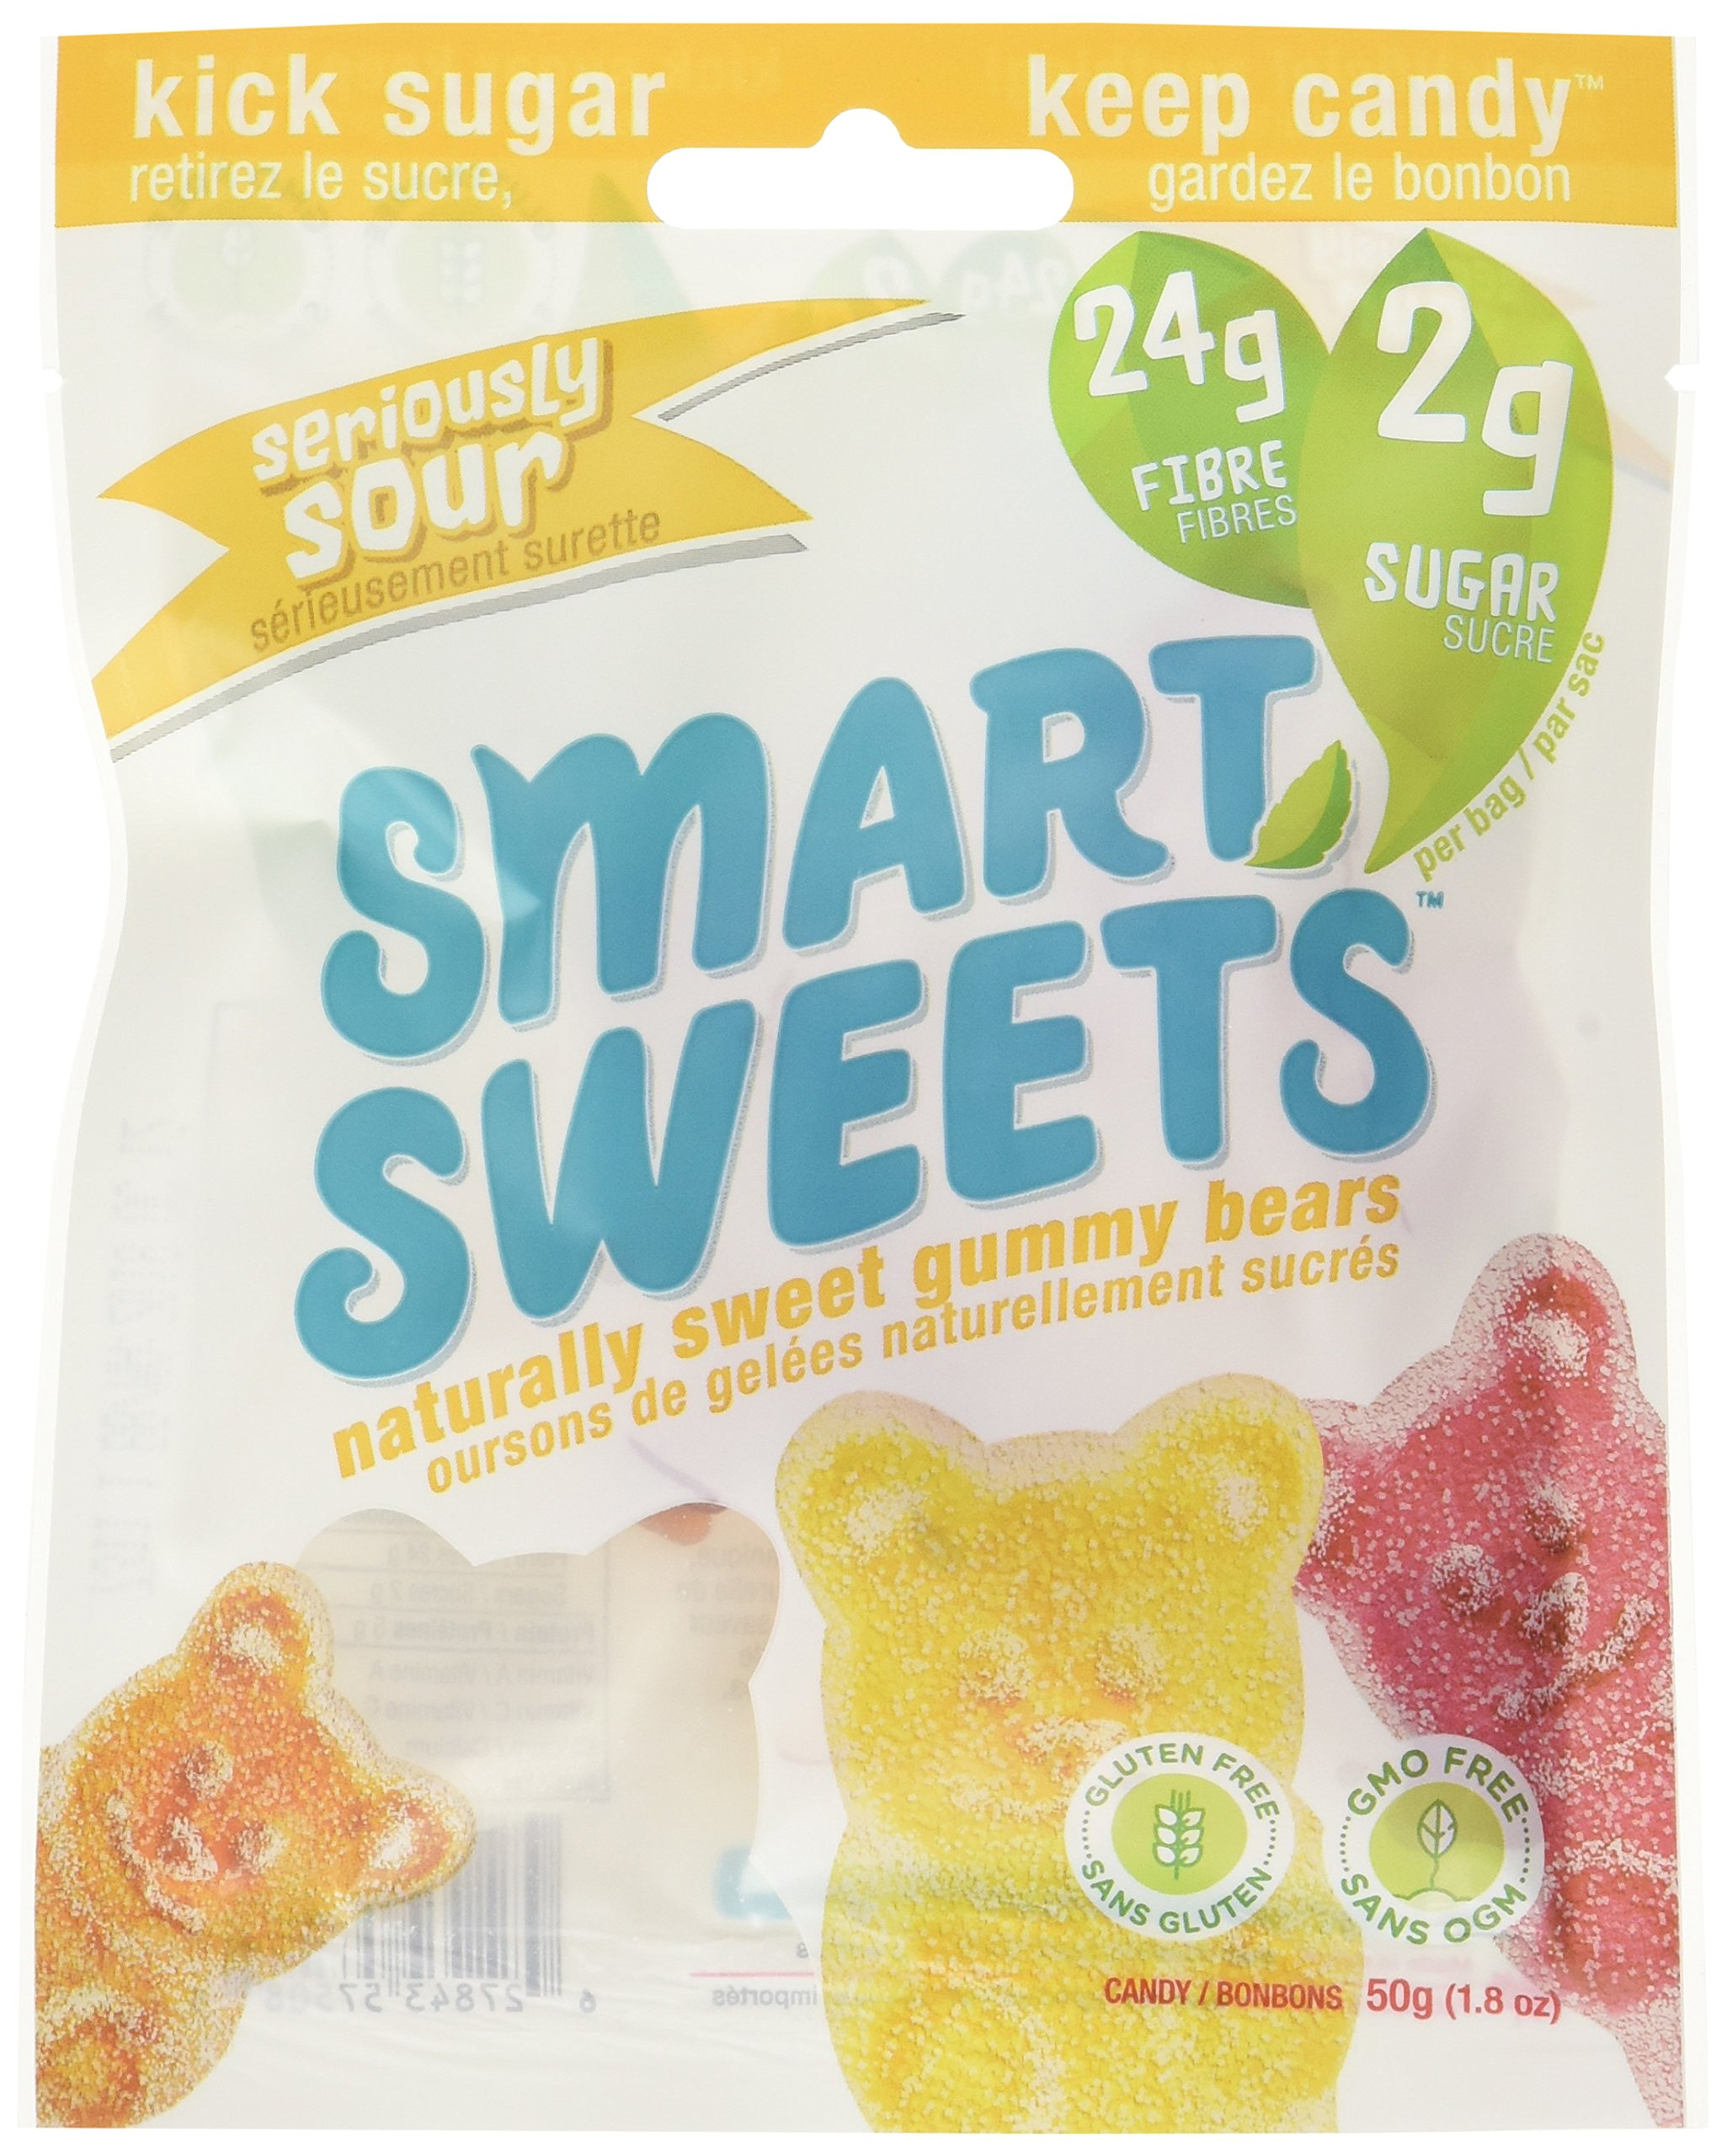 SmartSweets Low Sugar Gummy Bears Candy, Seriously Sour 1.8 oz bags (box of 12) Free of Sugar Alcohols and No Artificial Sweeteners, Sweetened with Stevia